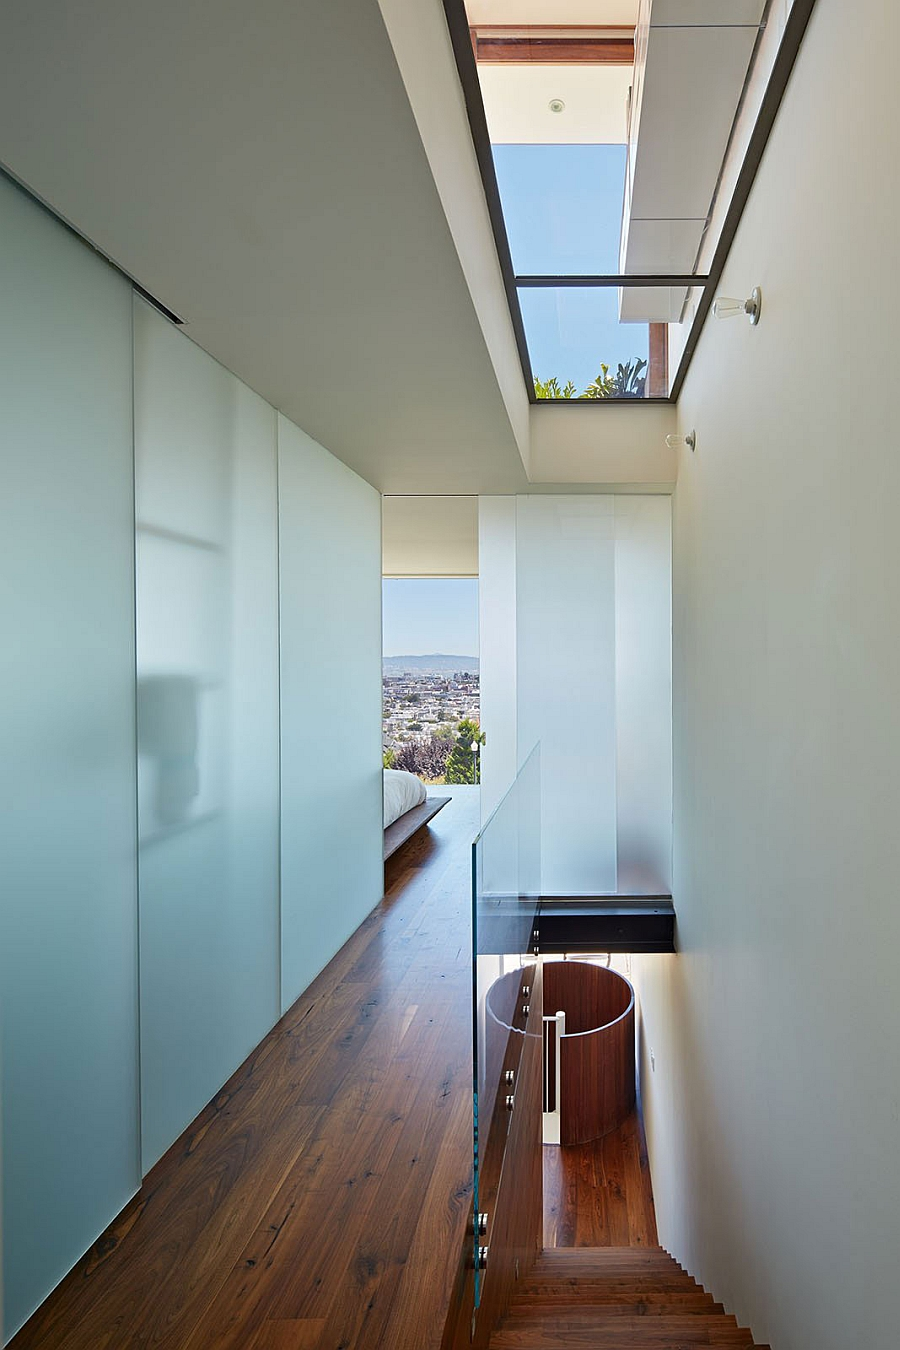 Sky lights usher in natural ventilation into the bedroom with San Francisco Skyline views